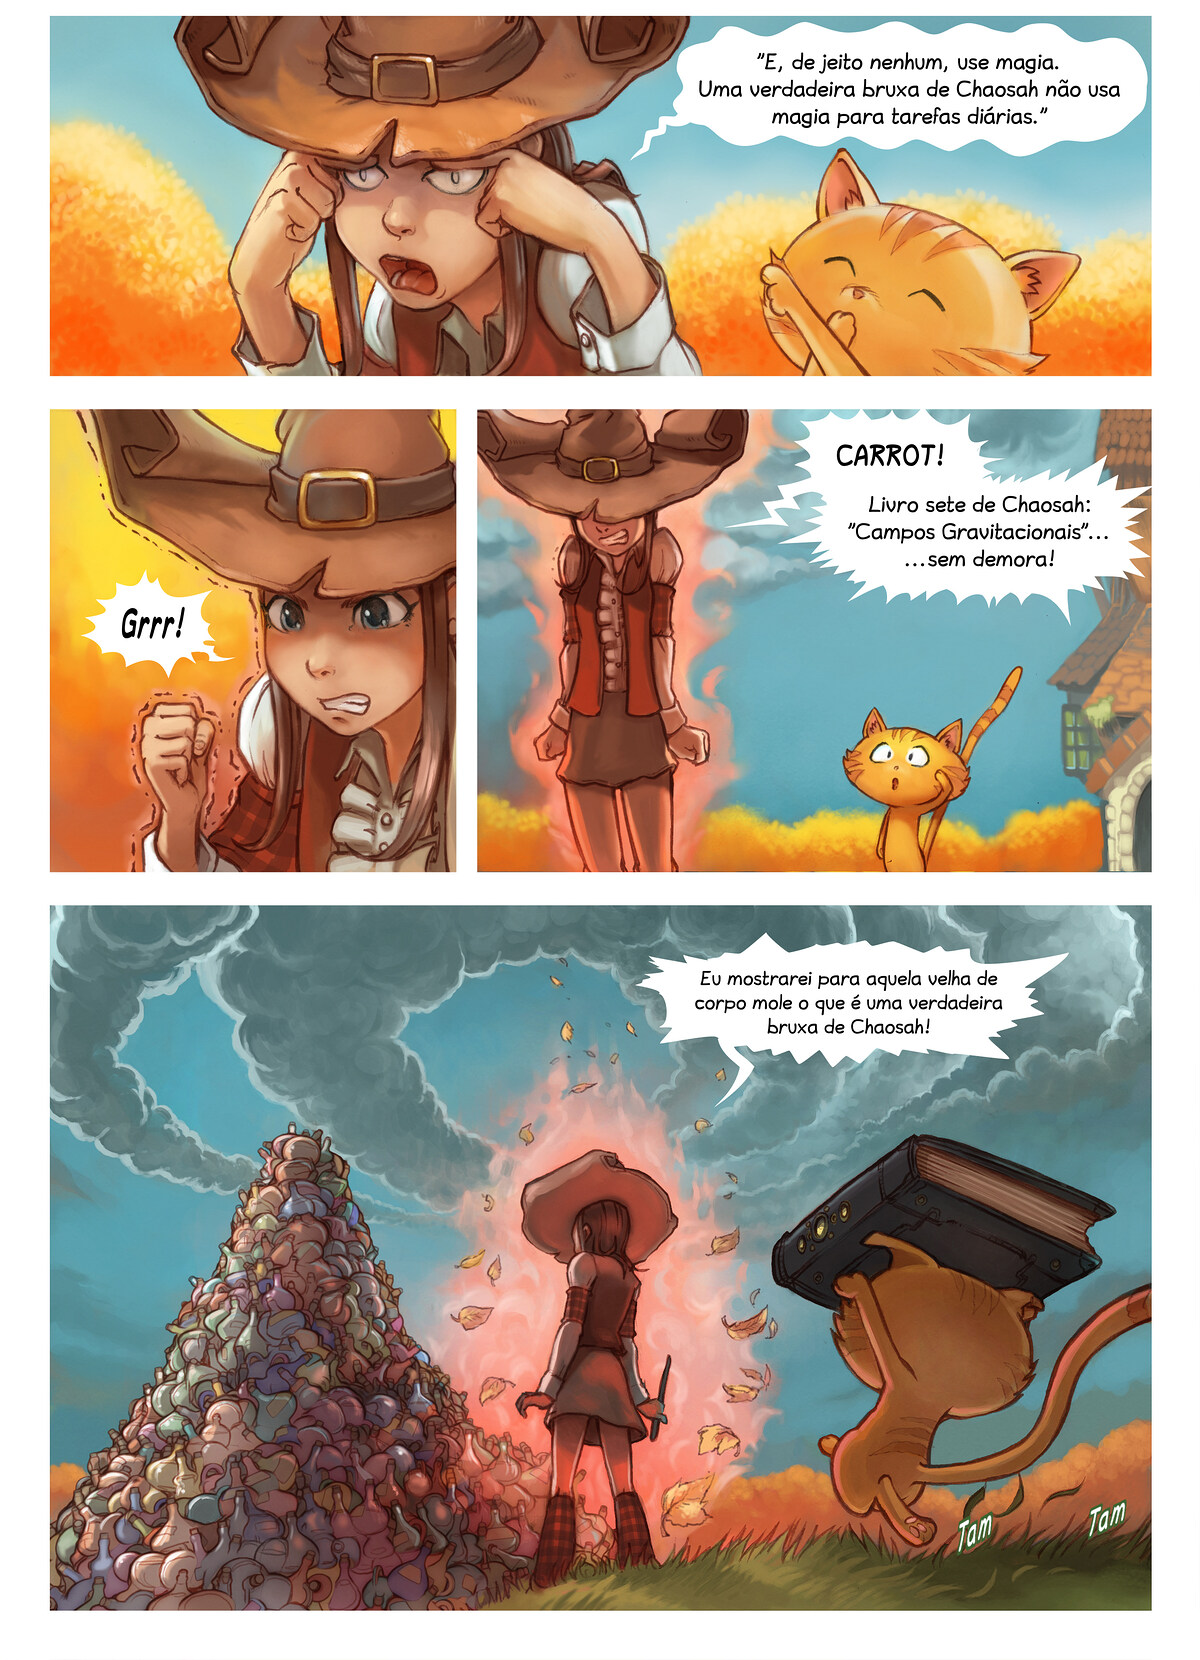 A webcomic page of Pepper&Carrot, episódio 12 [pt], página 3